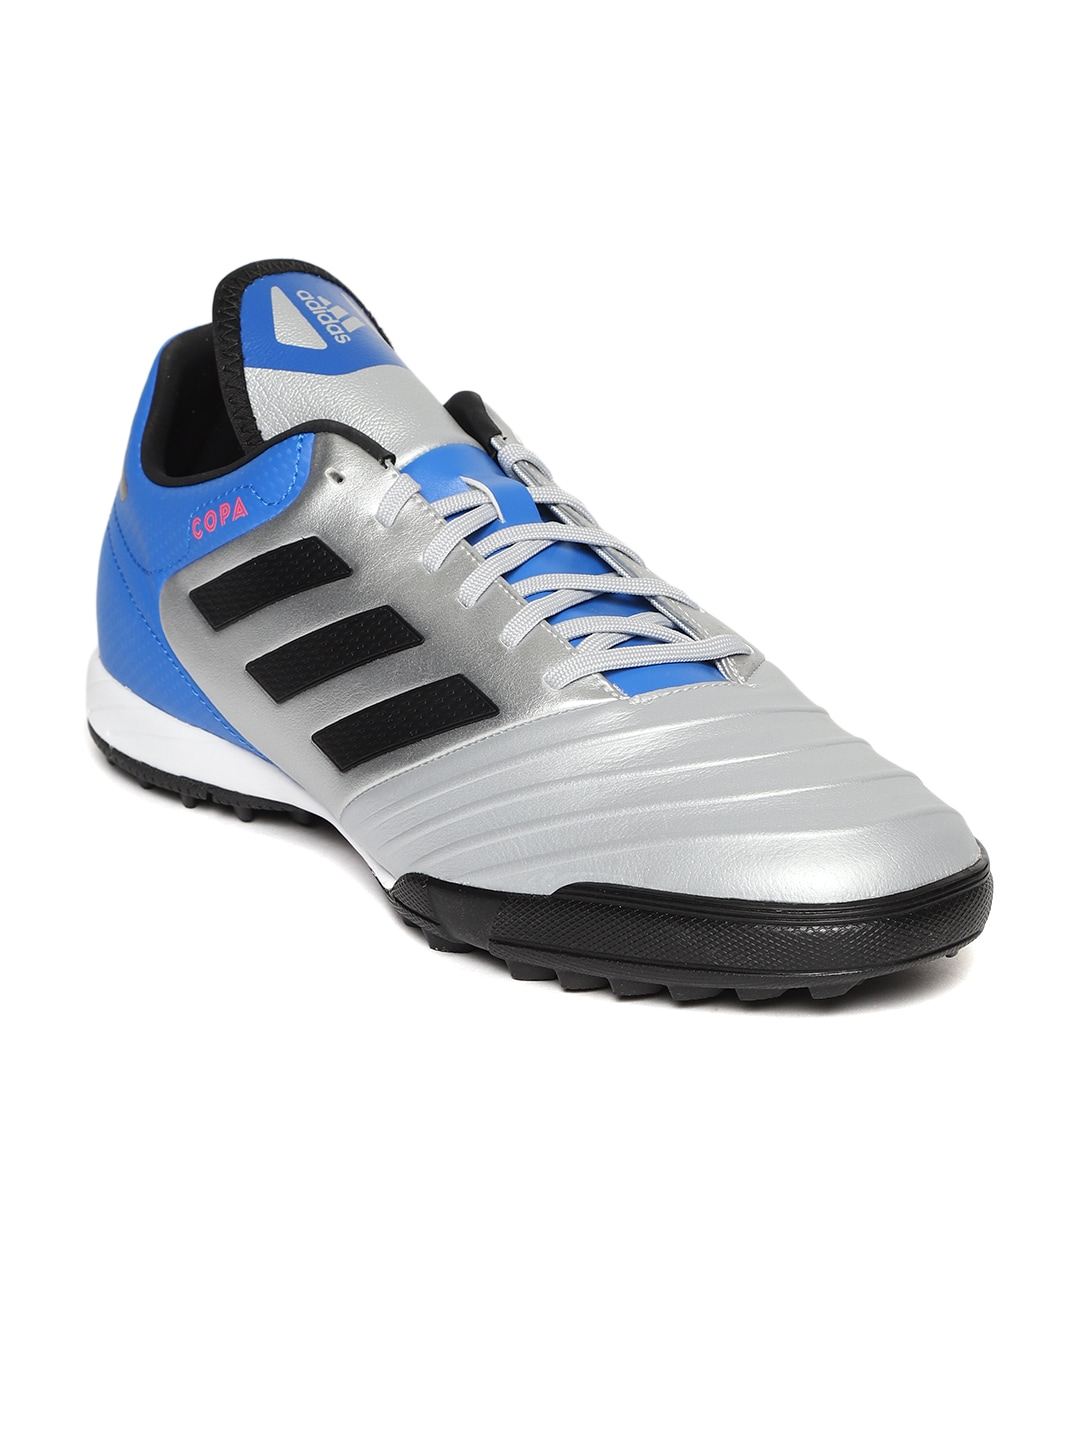 new arrival 4474d 316f7 Football Shoes - Buy Football Studs Online for Men  Women in